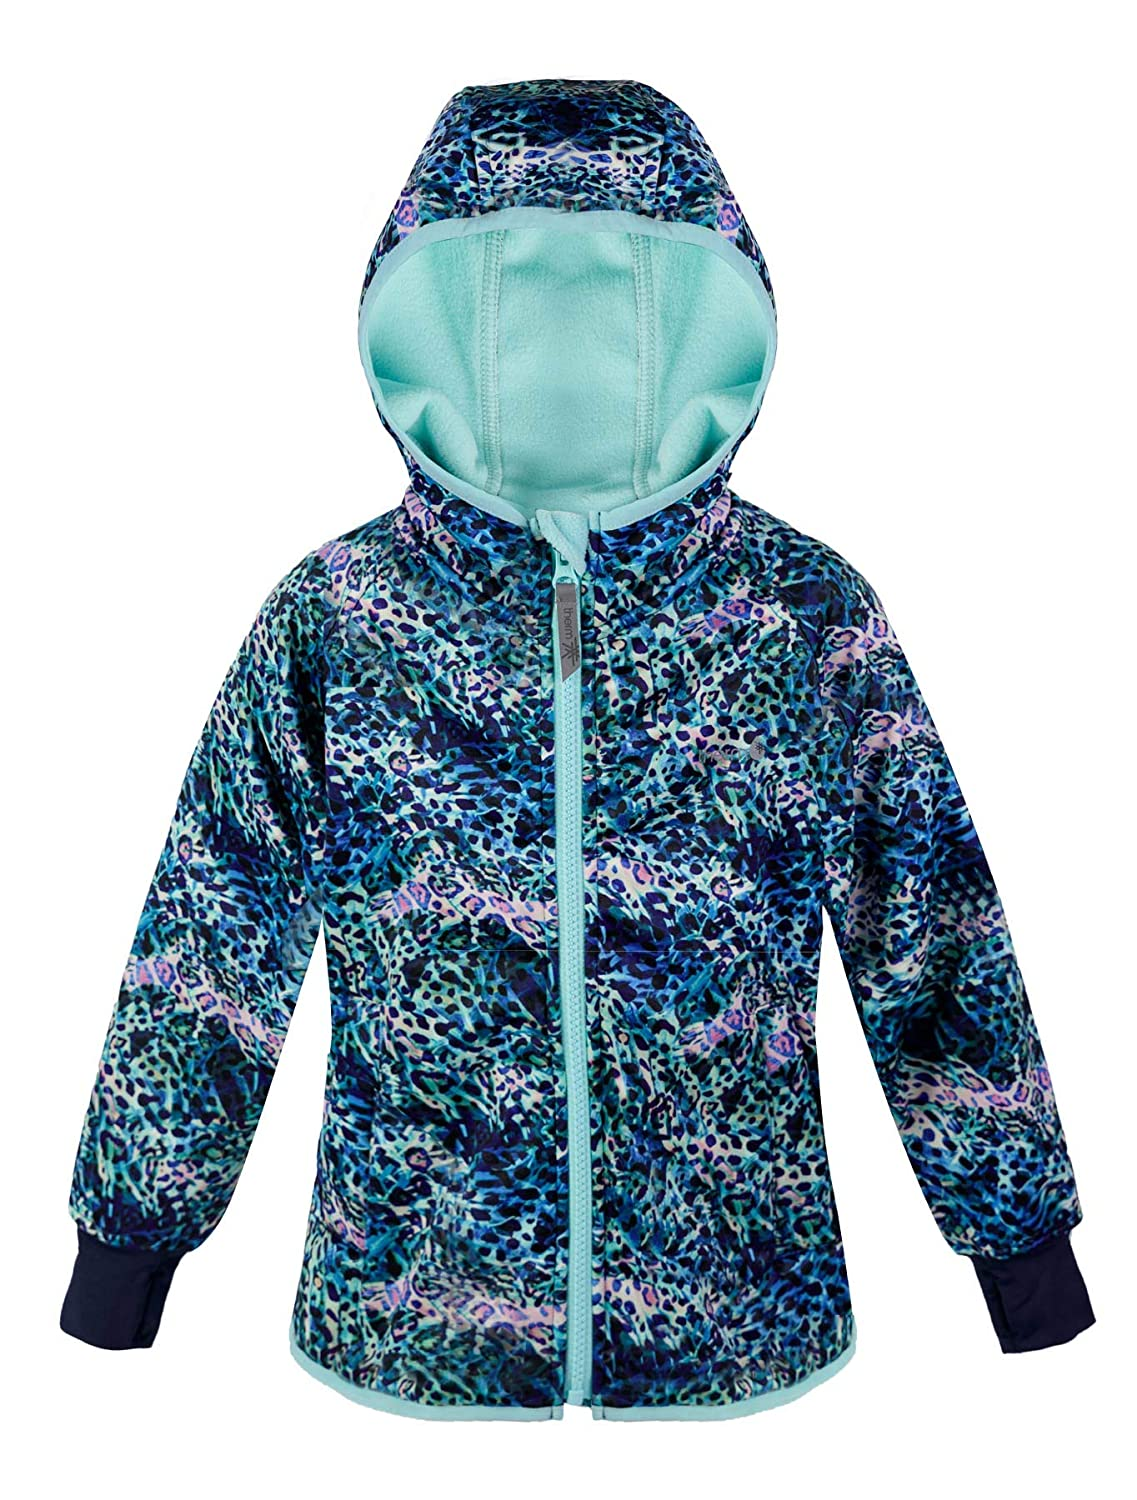 Fleece Lined Toddler Kids Youth Clothes Eco Friendly Fabric Lightweight Winter Raincoat Therm Girls Rain Jacket